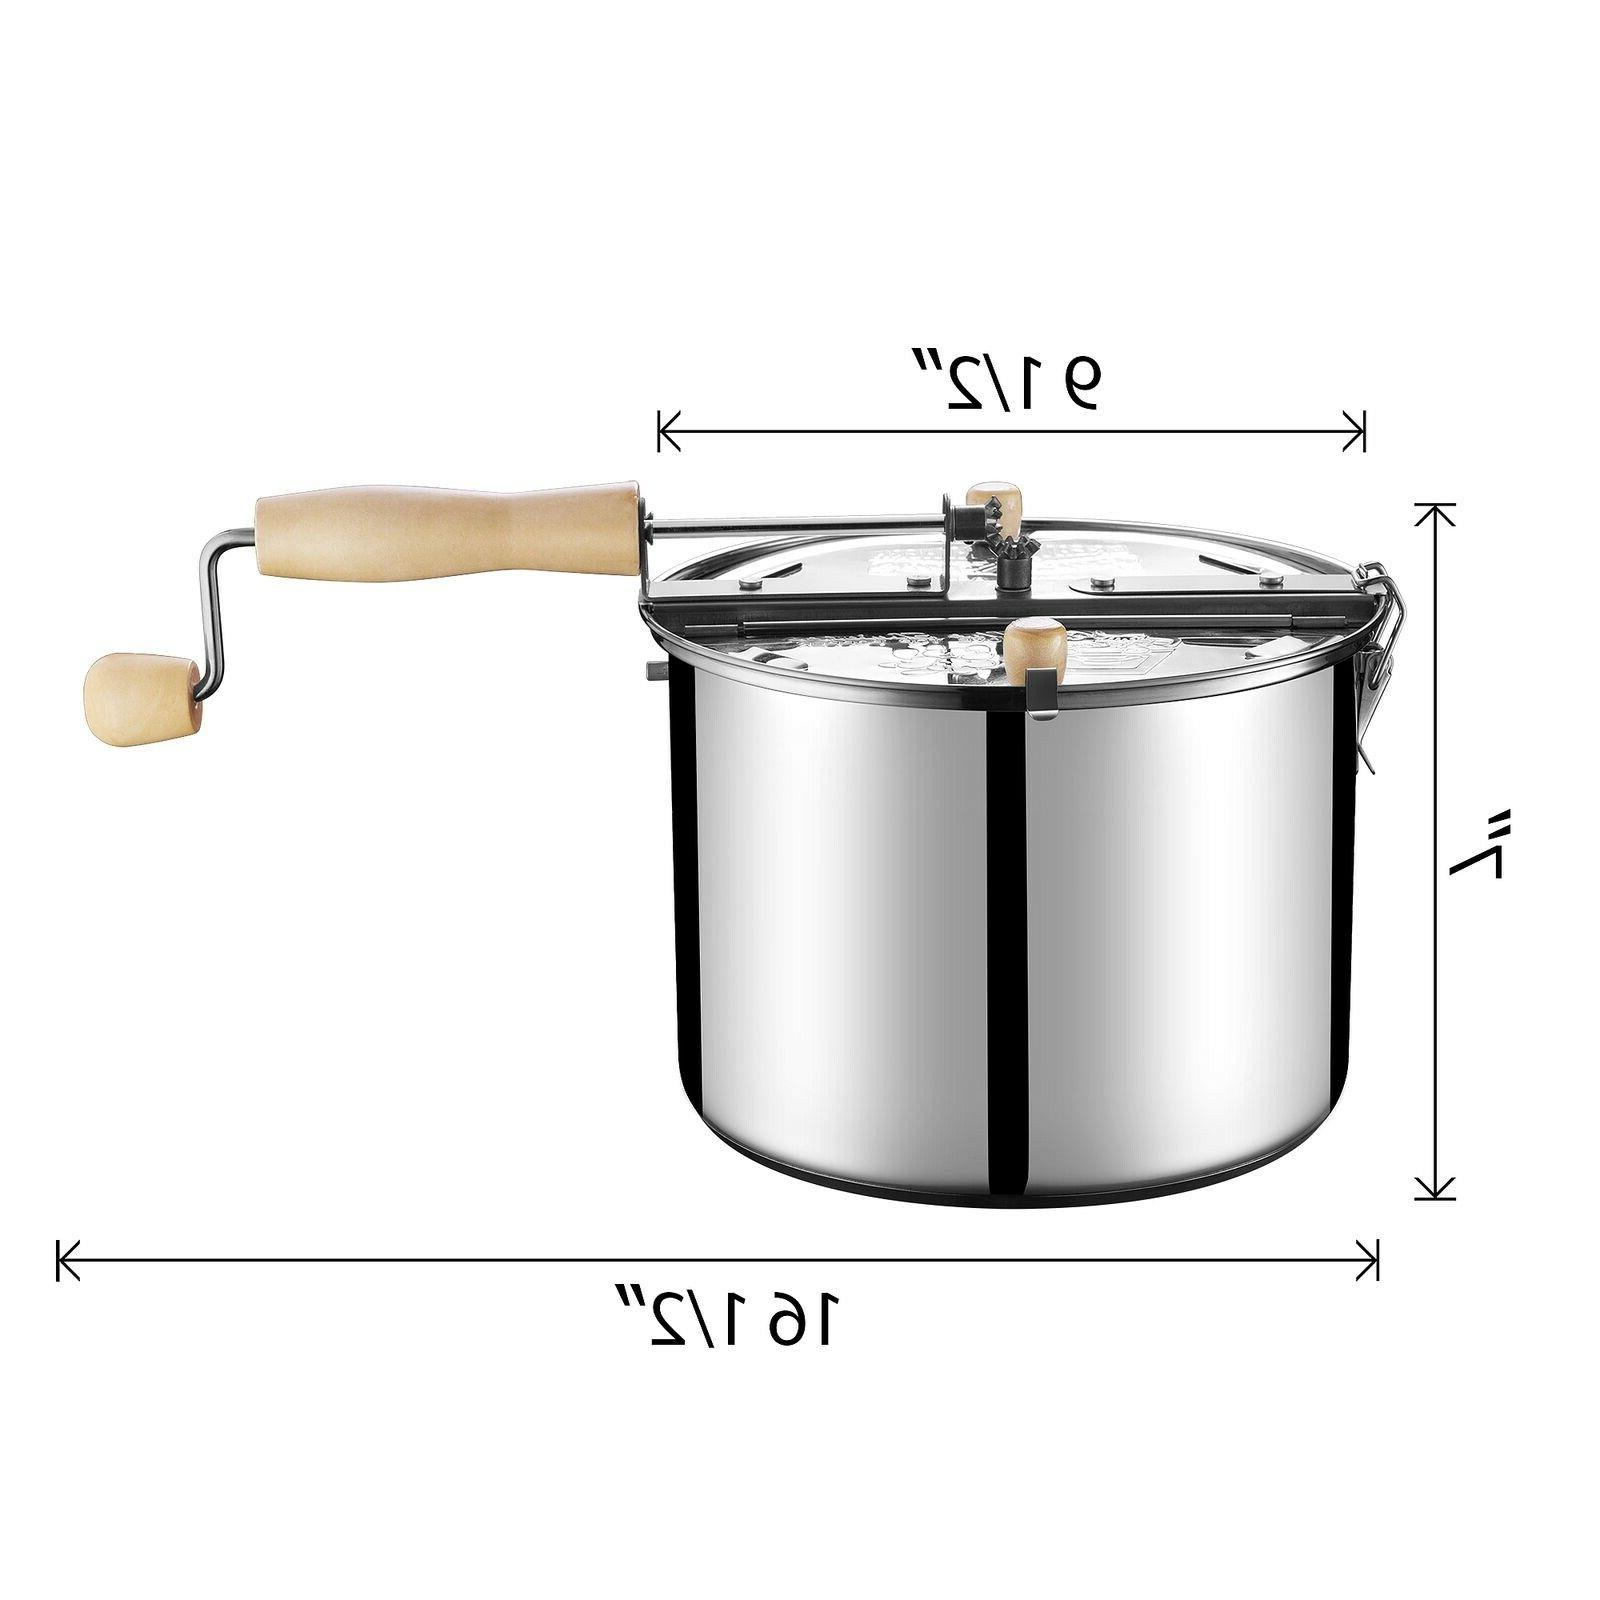 Original Stainless Stove 6 Quart Popcorn Popper by Great